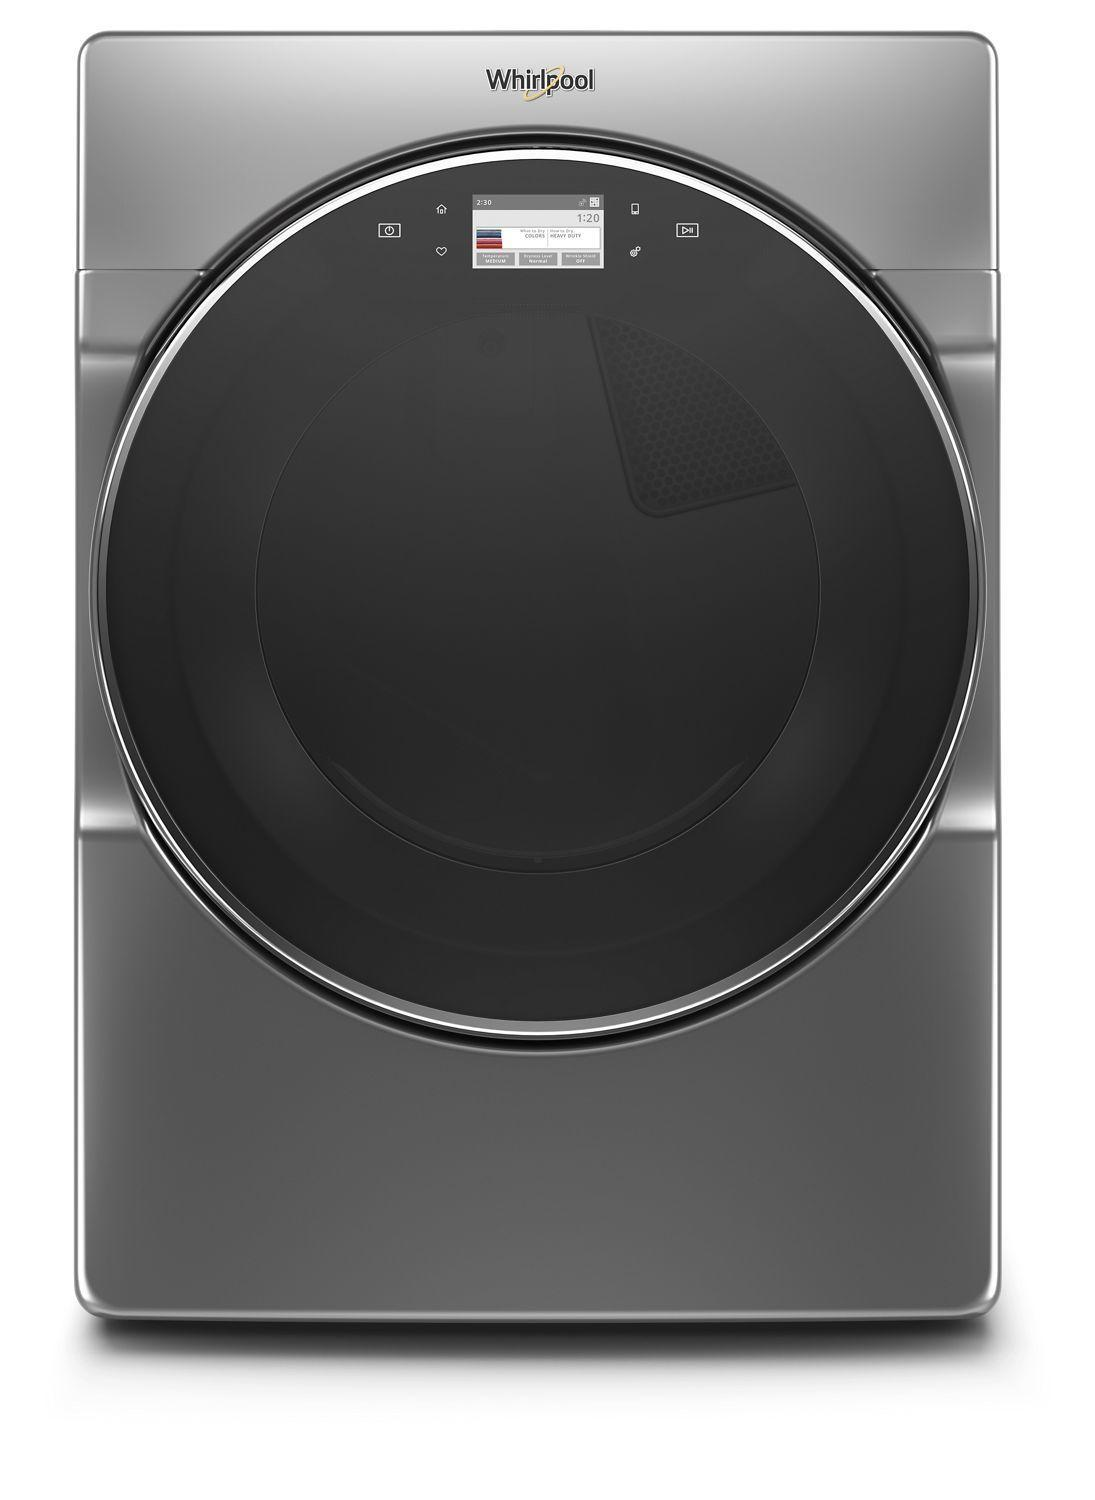 Whirlpool7.4 Cu. Ft. Smart Front Load Gas Dryer Chrome Shadow